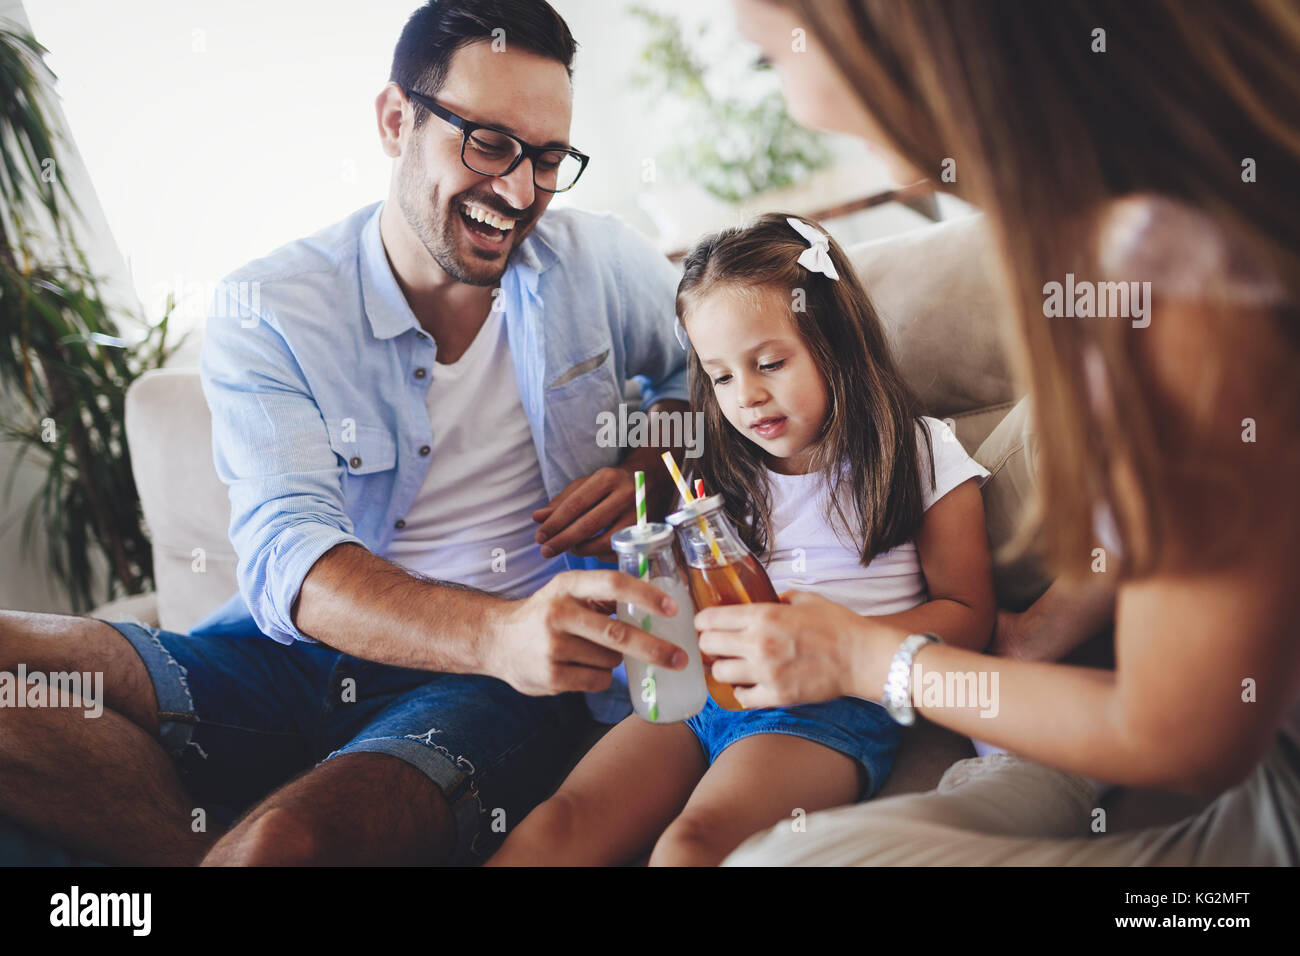 Happy family drinking juice together in their house - Stock Image